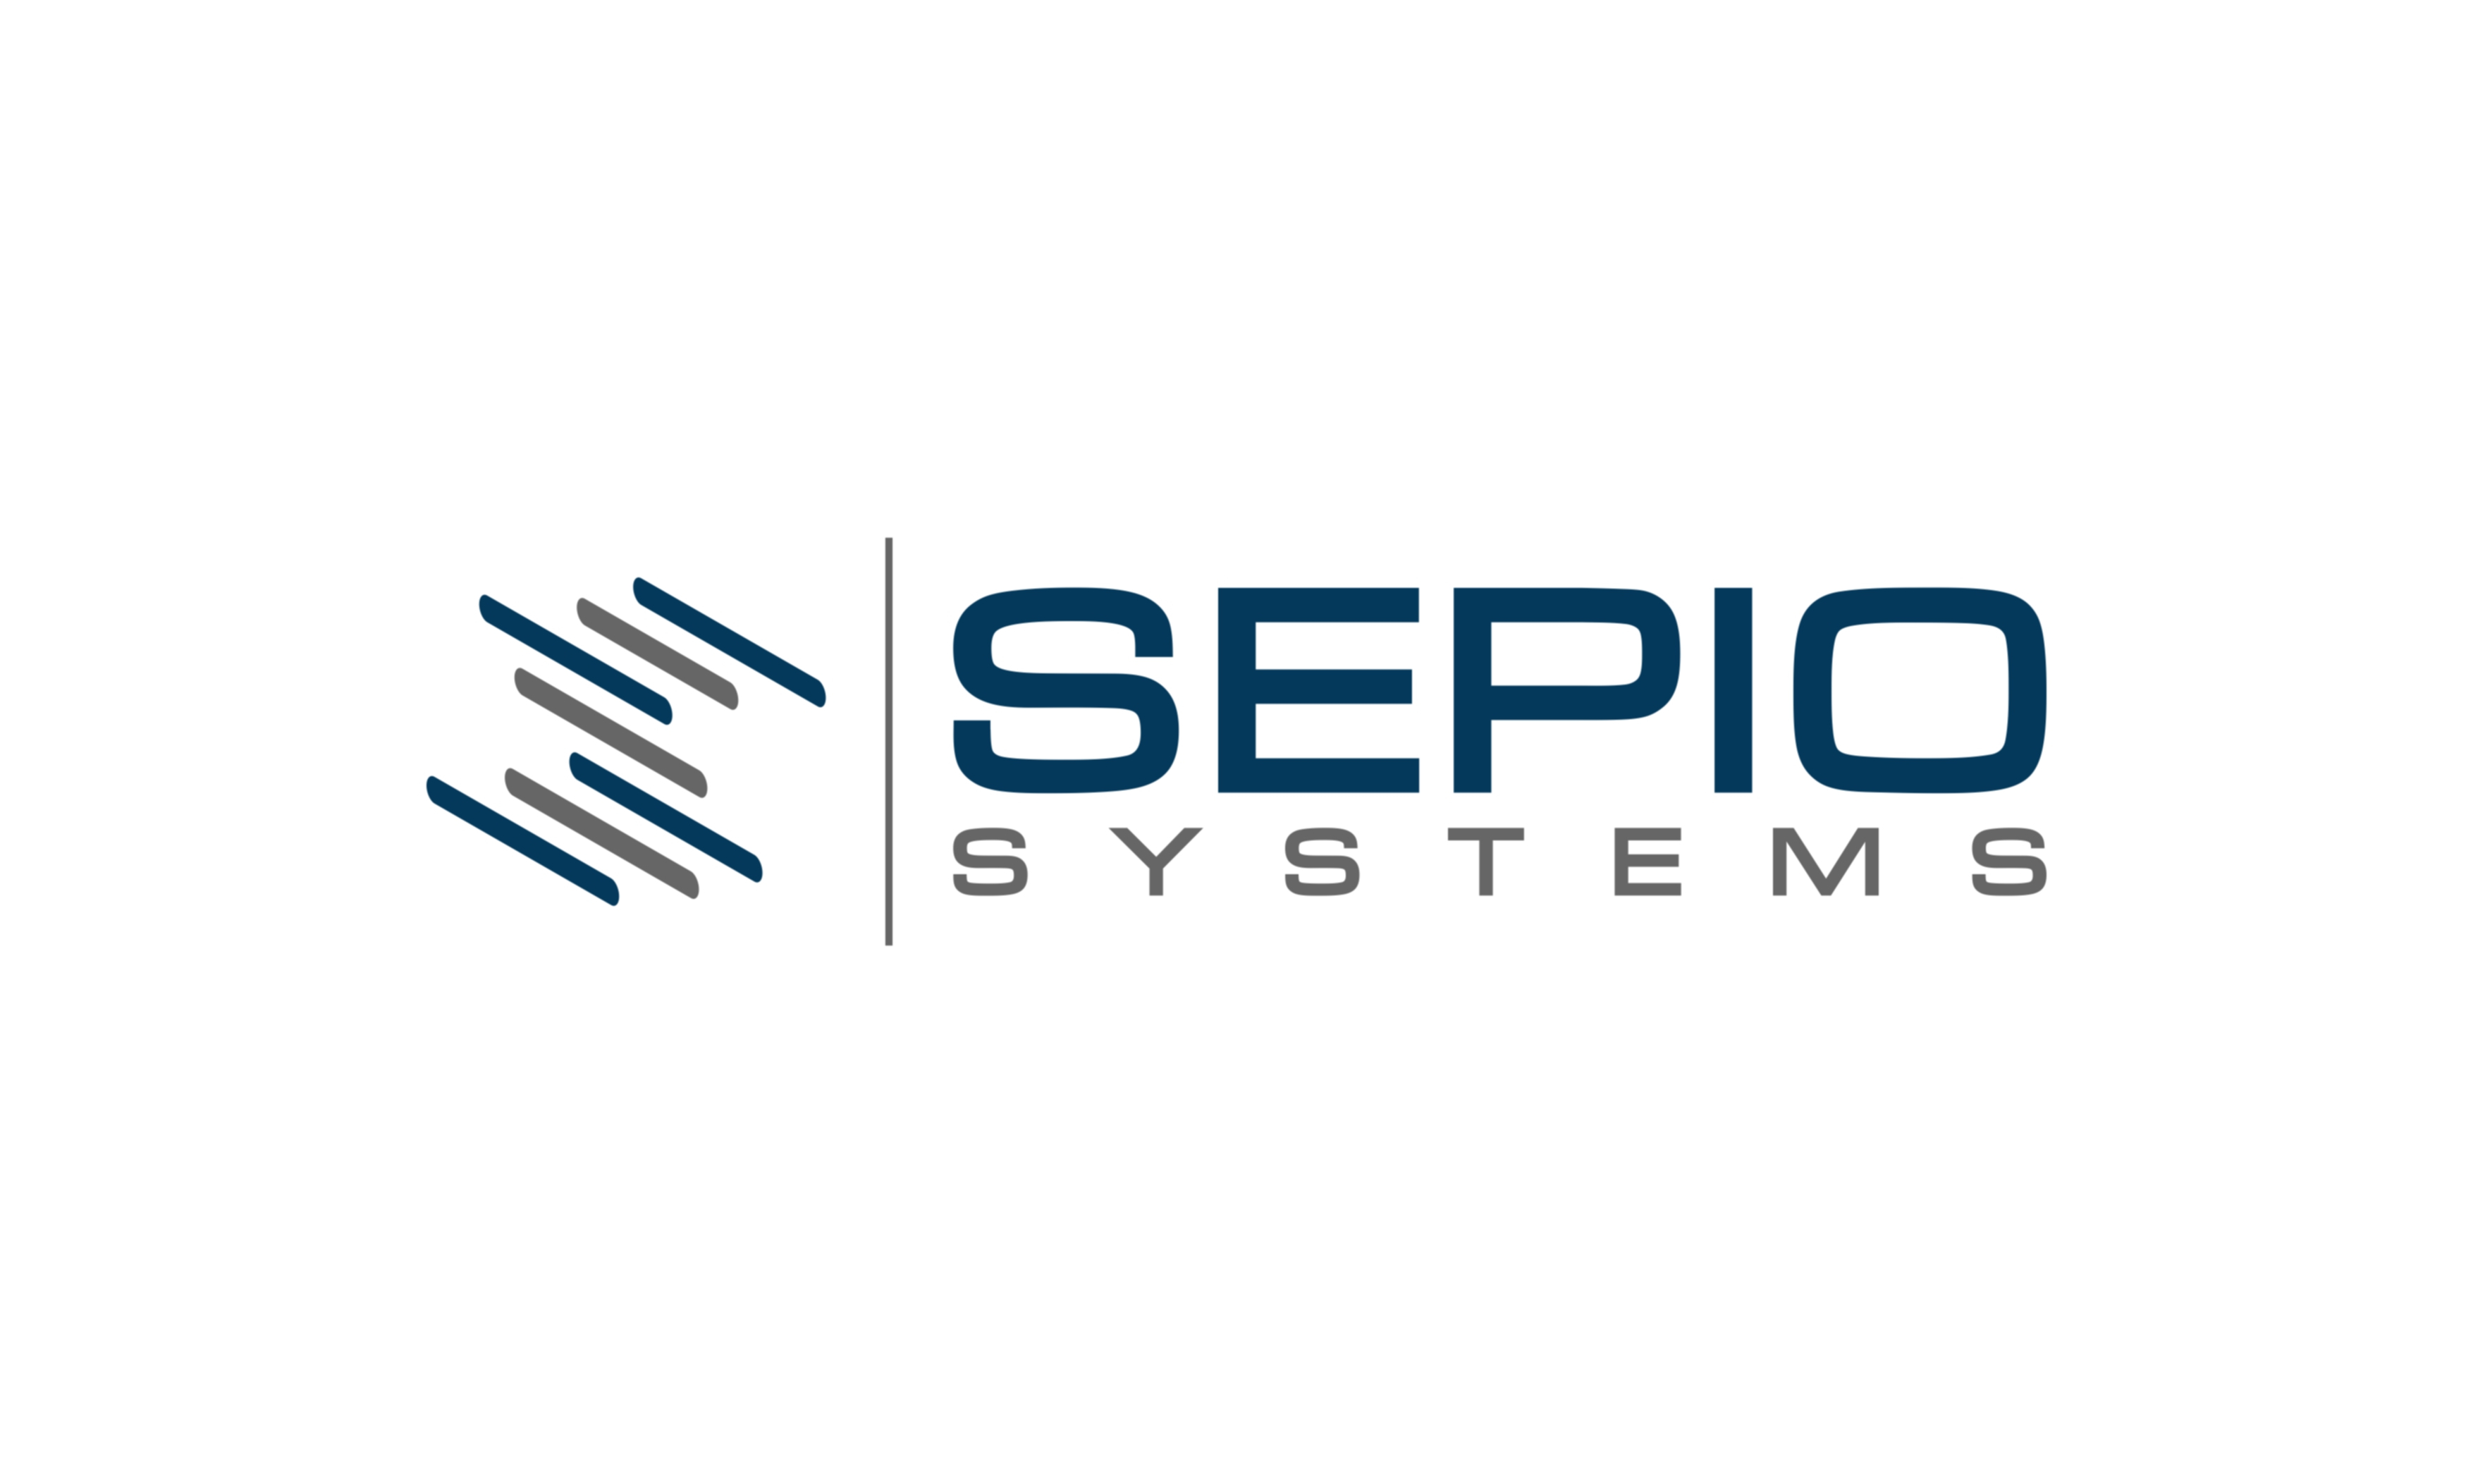 Rogue Device Mitigation Startup Sepio Systems Completes $6.5M Series A round led by Hanaco Ventures and Merlin Ventures